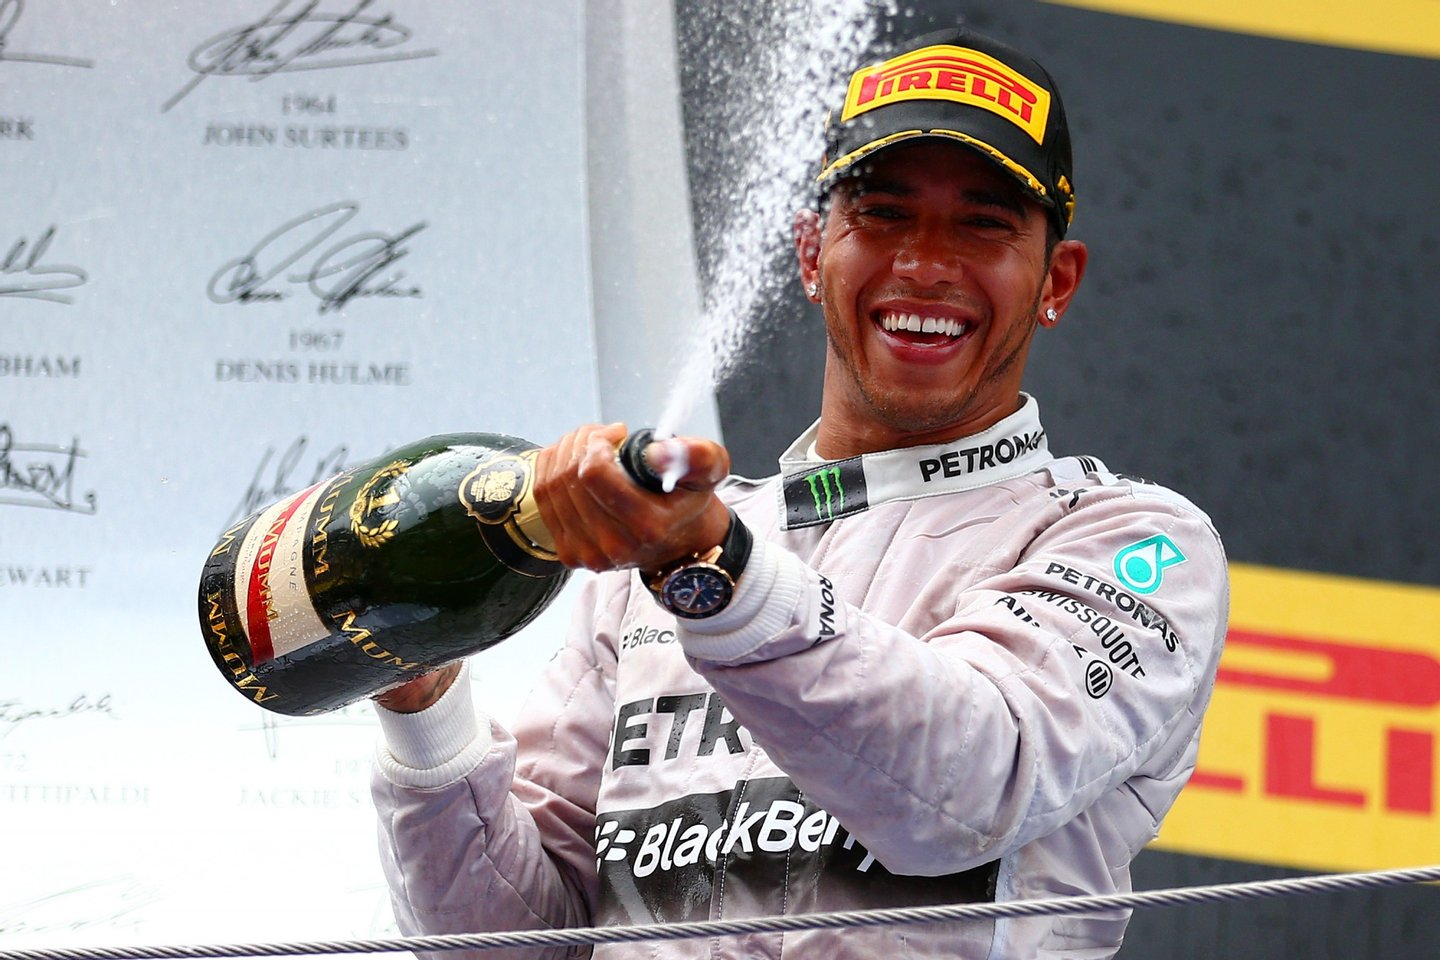 MONTMELO, SPAIN - MAY 11: Race winner Lewis Hamilton of Great Britain and Mercedes GP sprays champagne as he celebrates on the podium during the Spanish Formula One Grand Prix at Circuit de Catalunya on May 11, 2014 in Montmelo, Spain. (Photo by Dan Istitene/Getty Images)